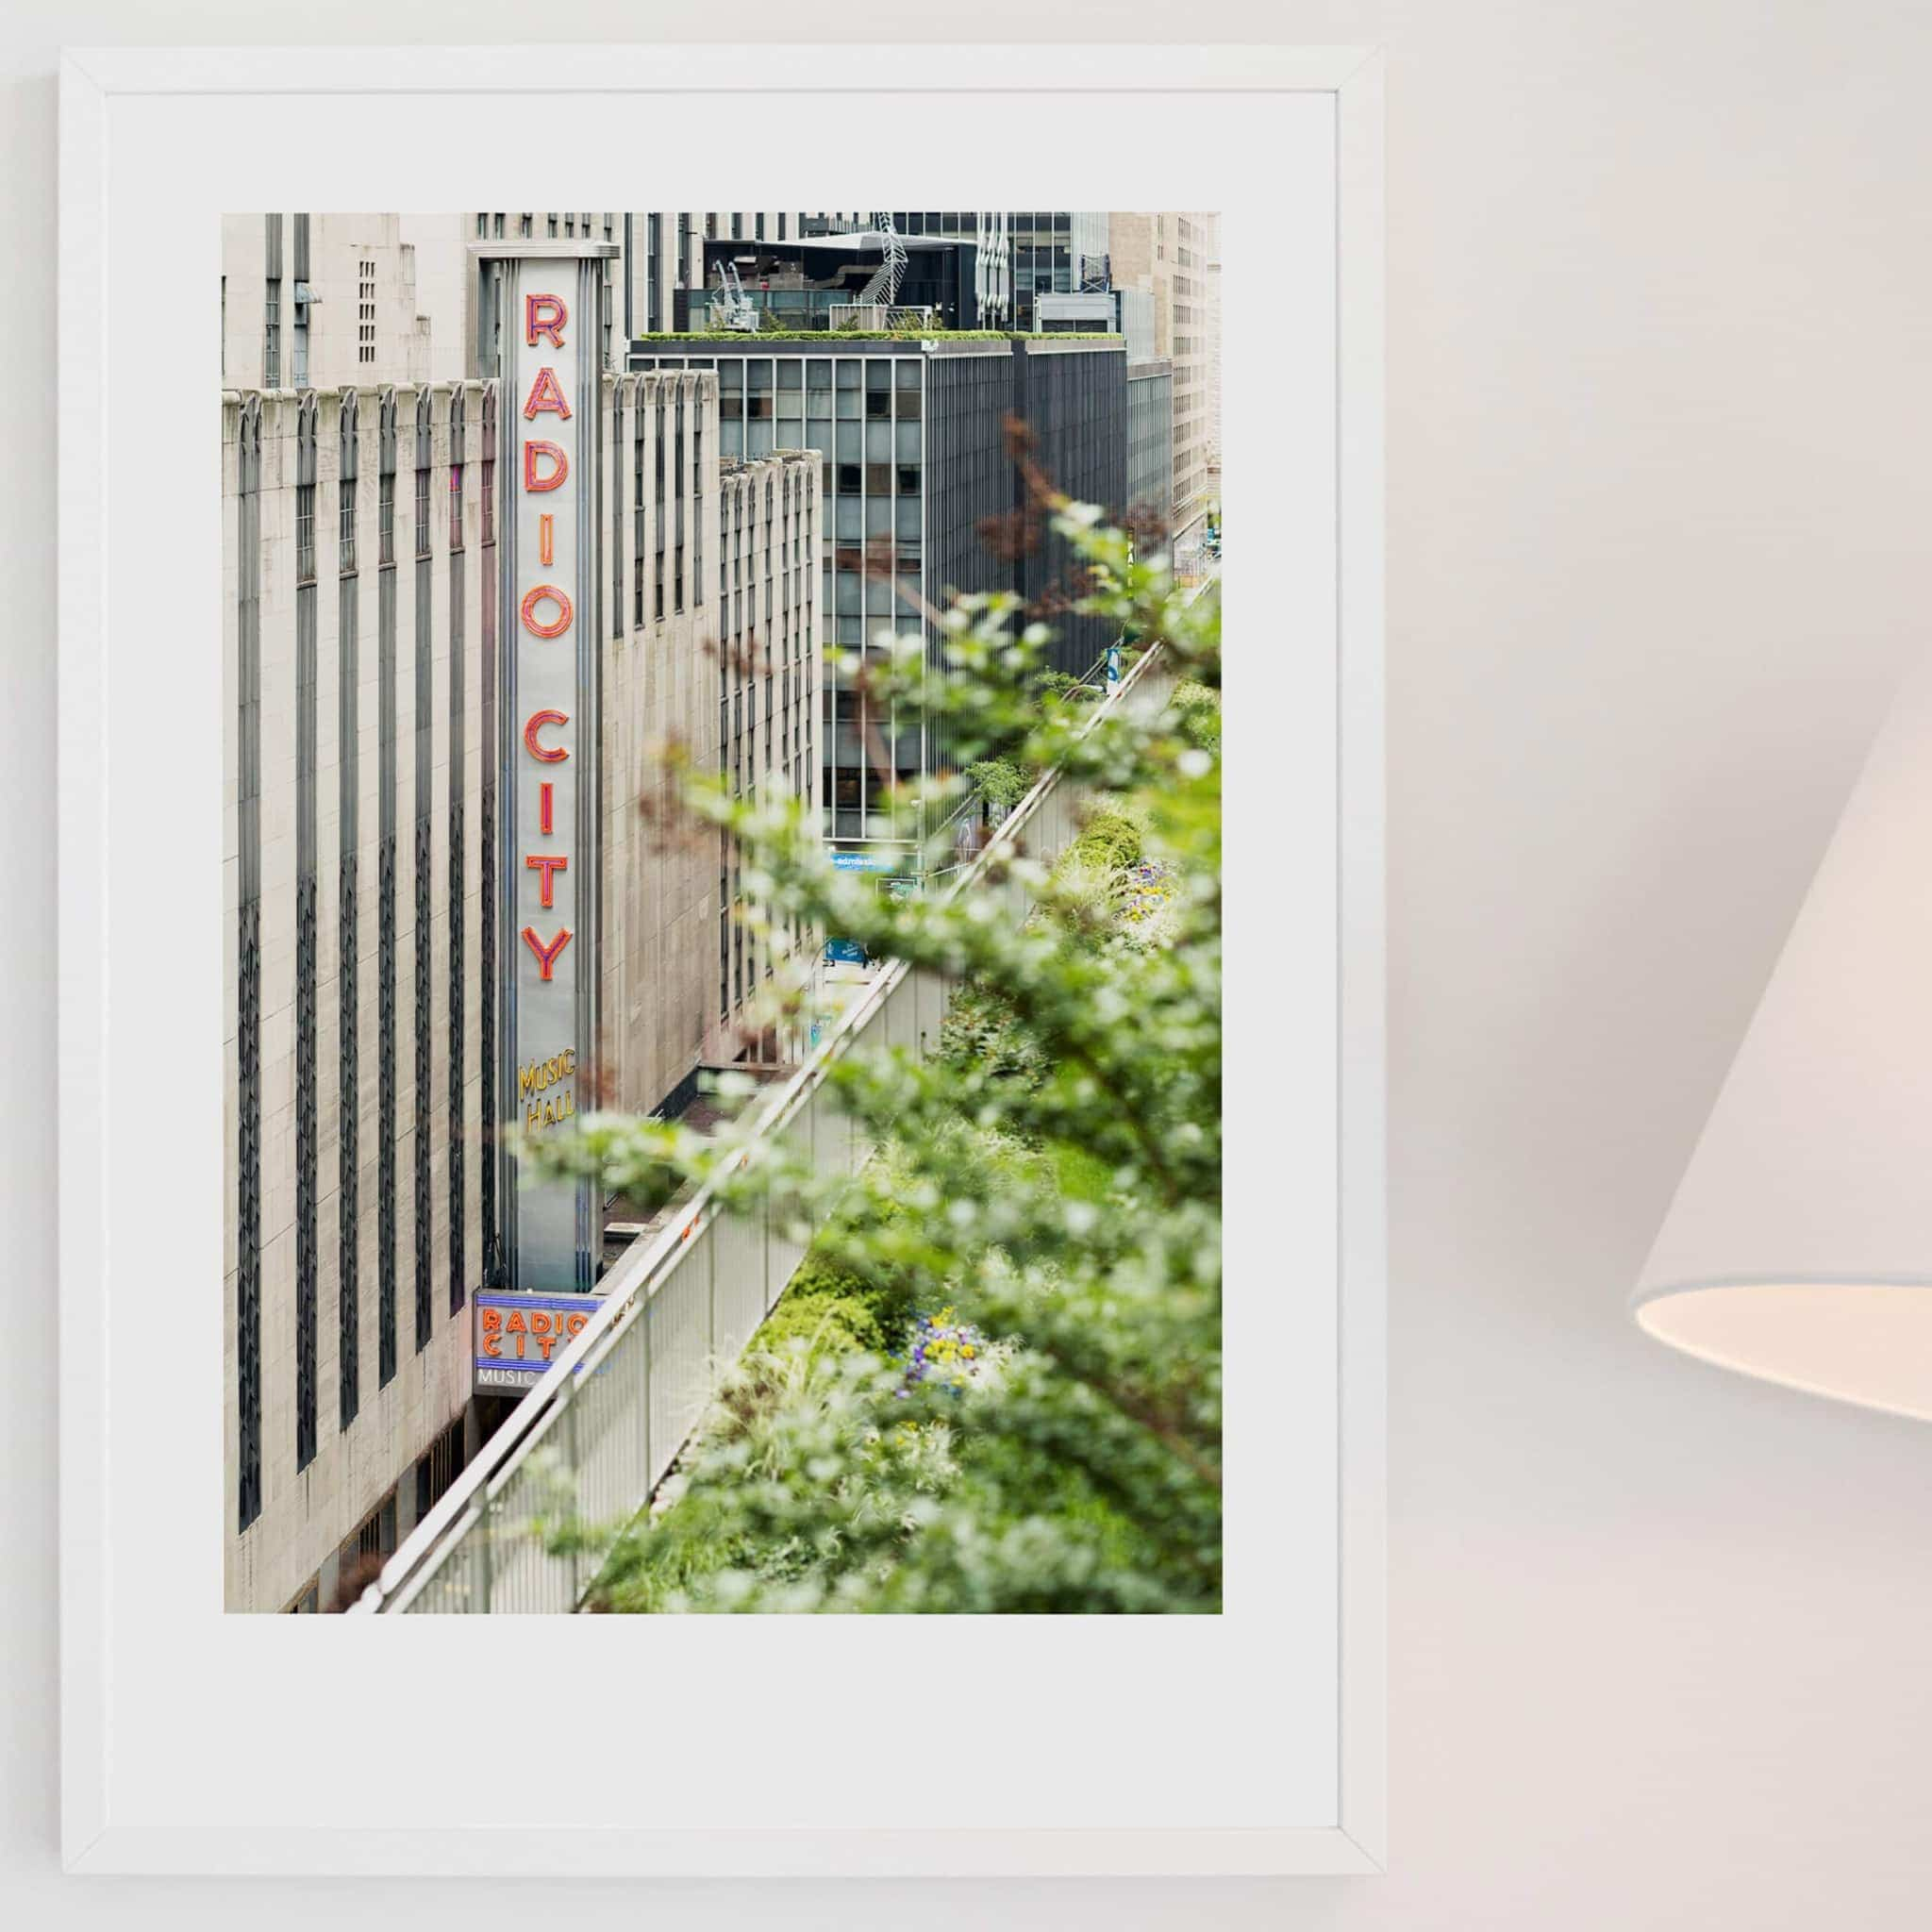 Radio City Music Hall print in white frame on the wall